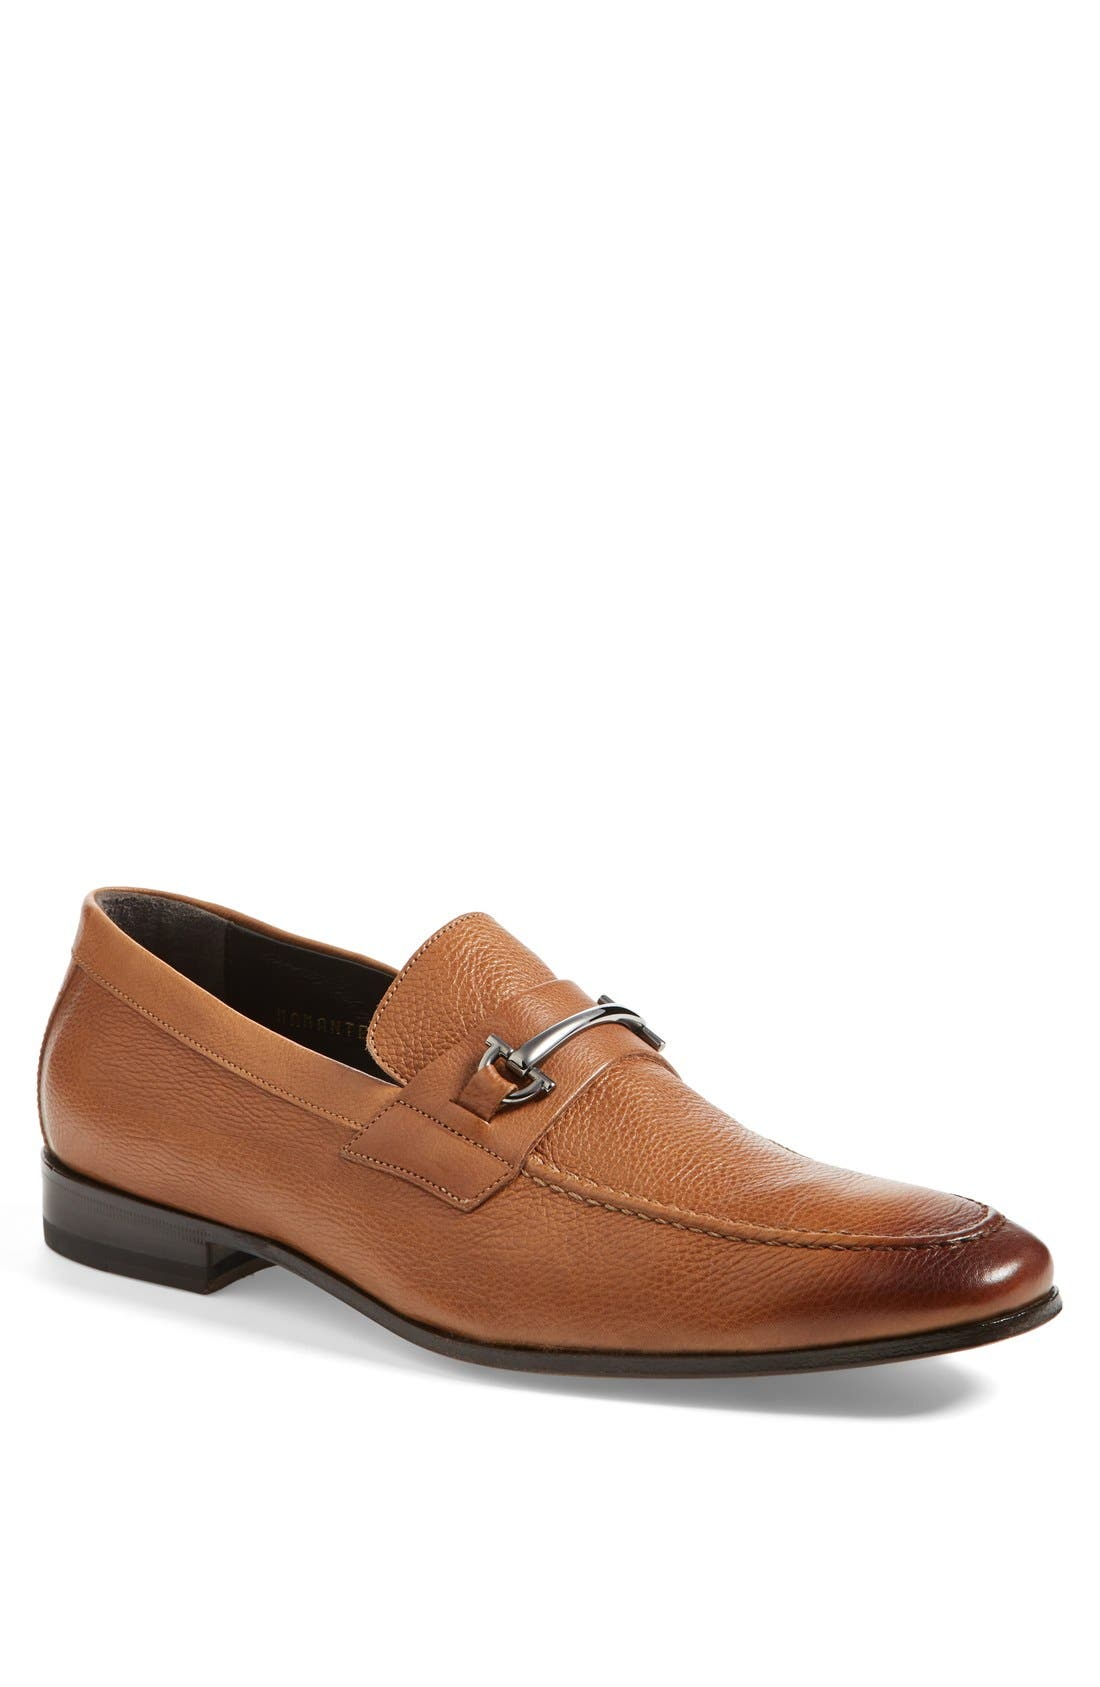 Alternate Image 1 Selected - Bruno Magli 'Mamante II' Pebbled Leather Loafer